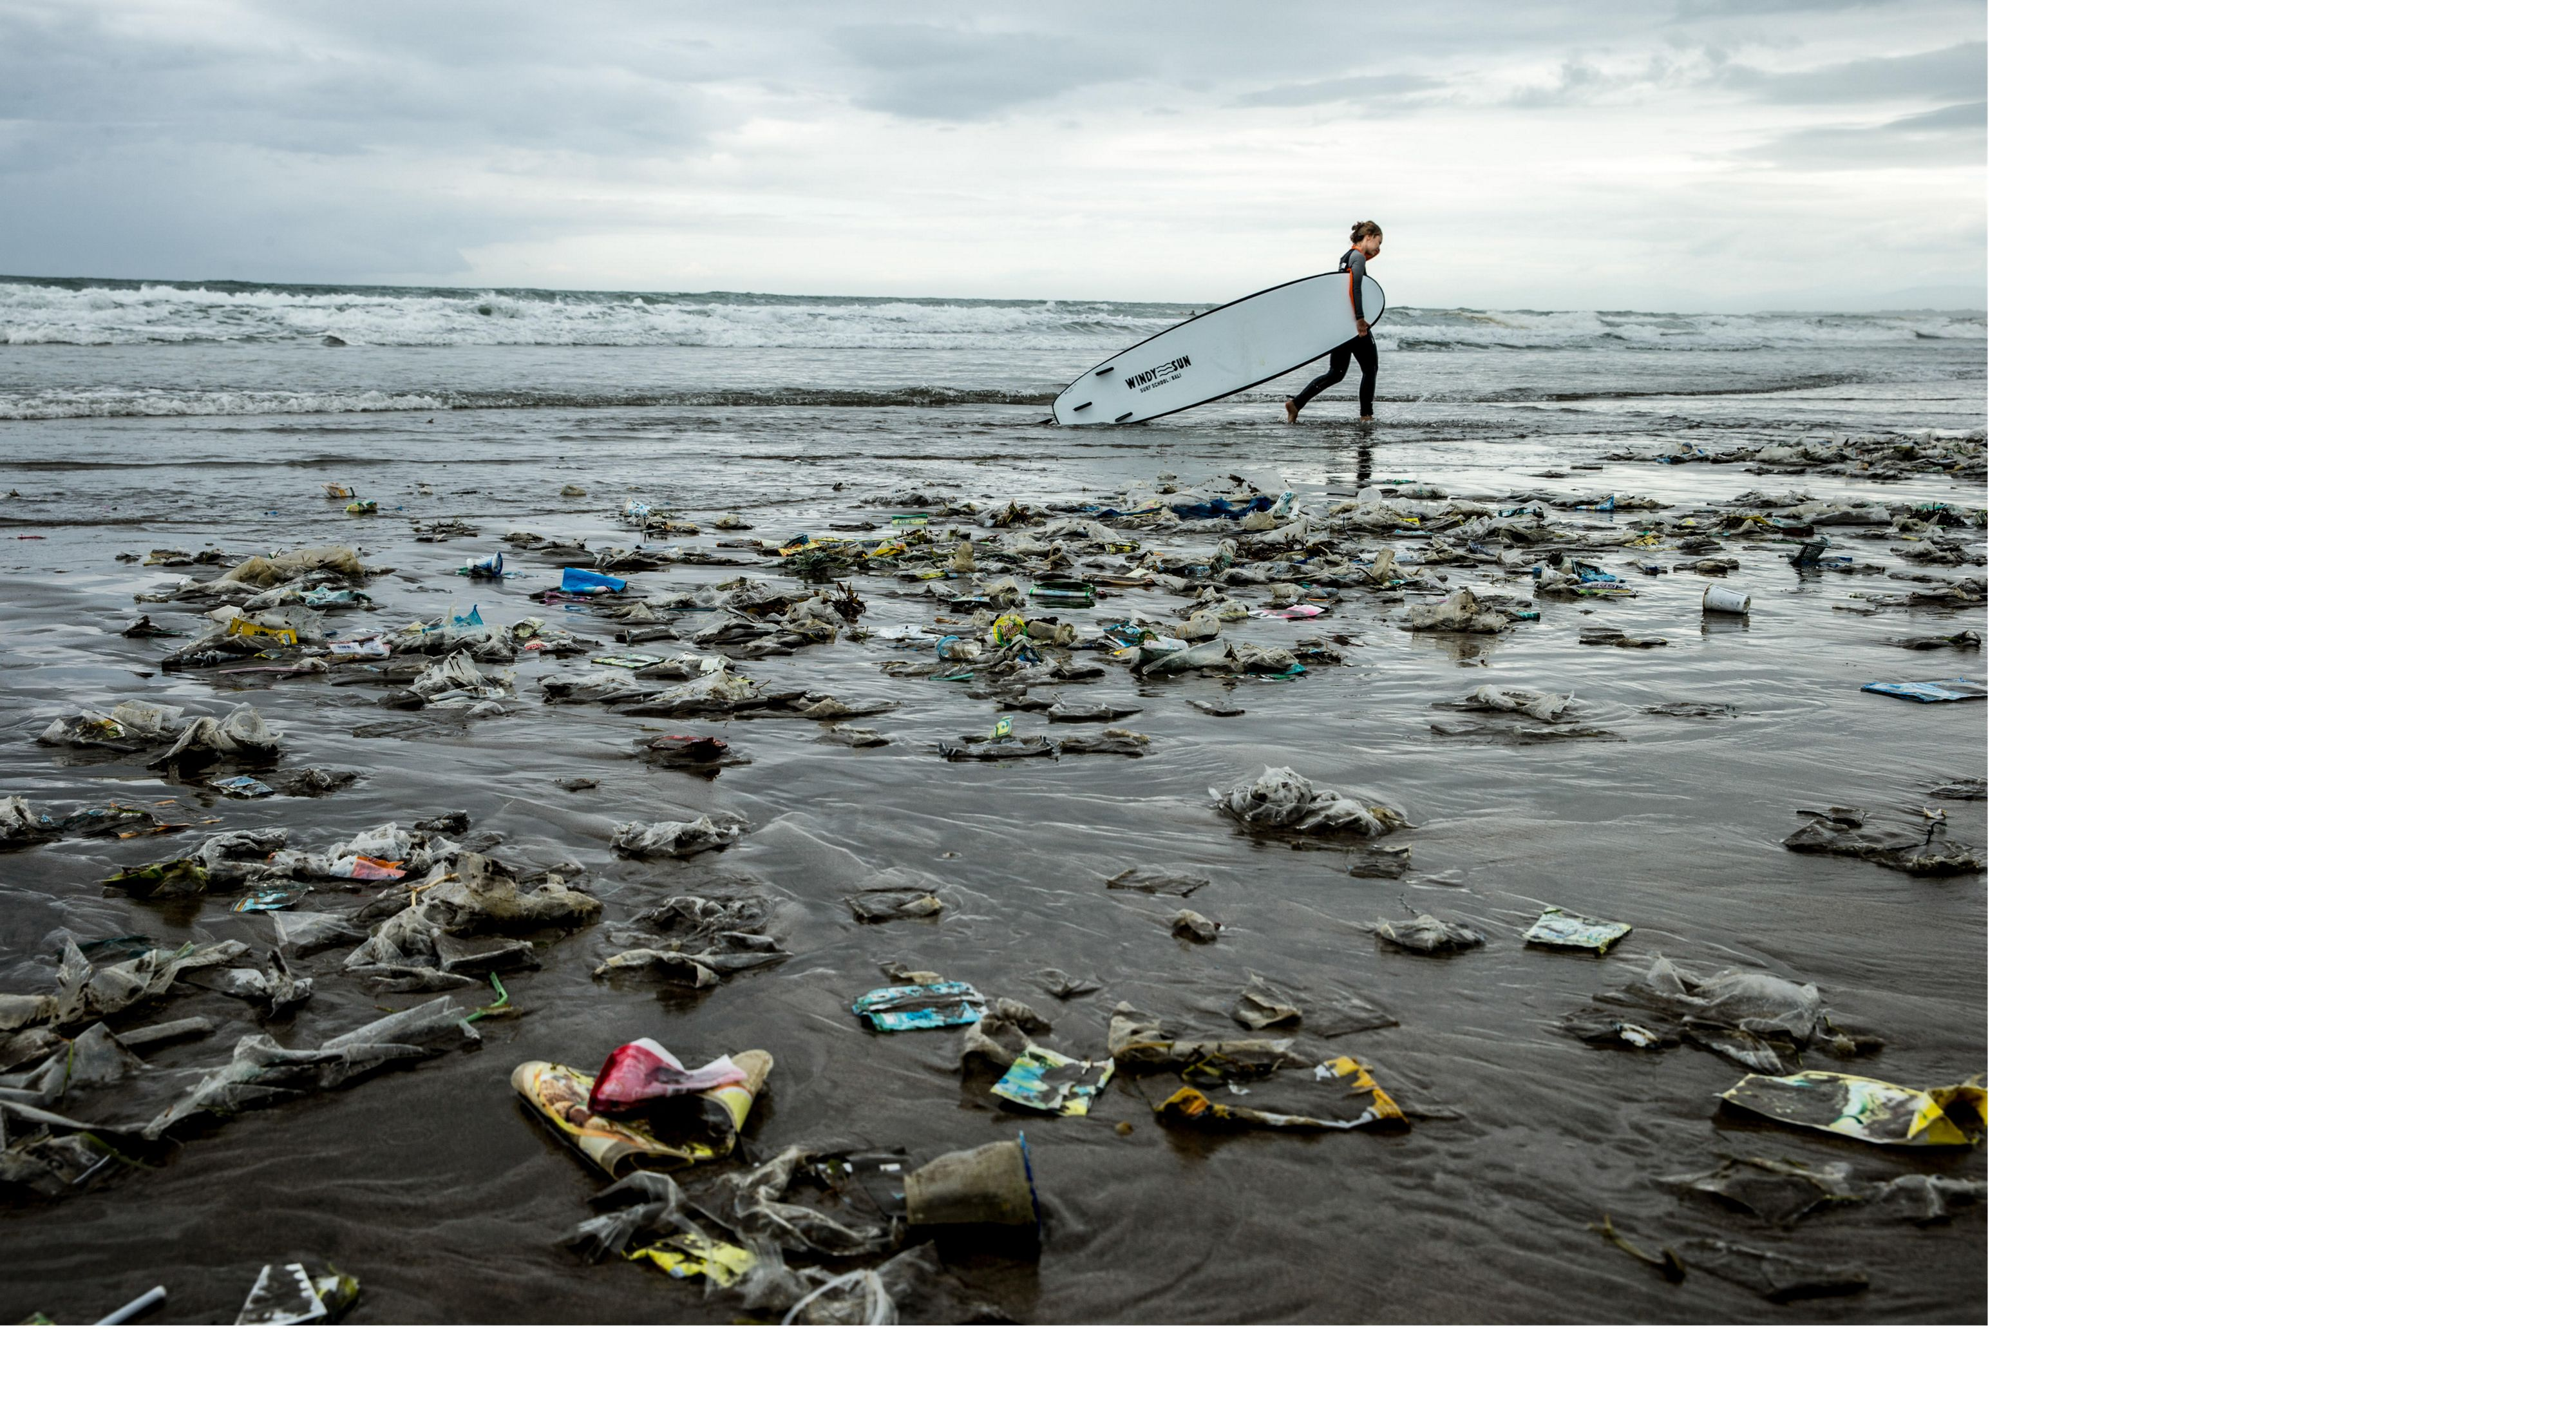 A surfer walks along the shore of a beach carrying a surf board, with large amounts of trash strewn on the sand in the foreground.